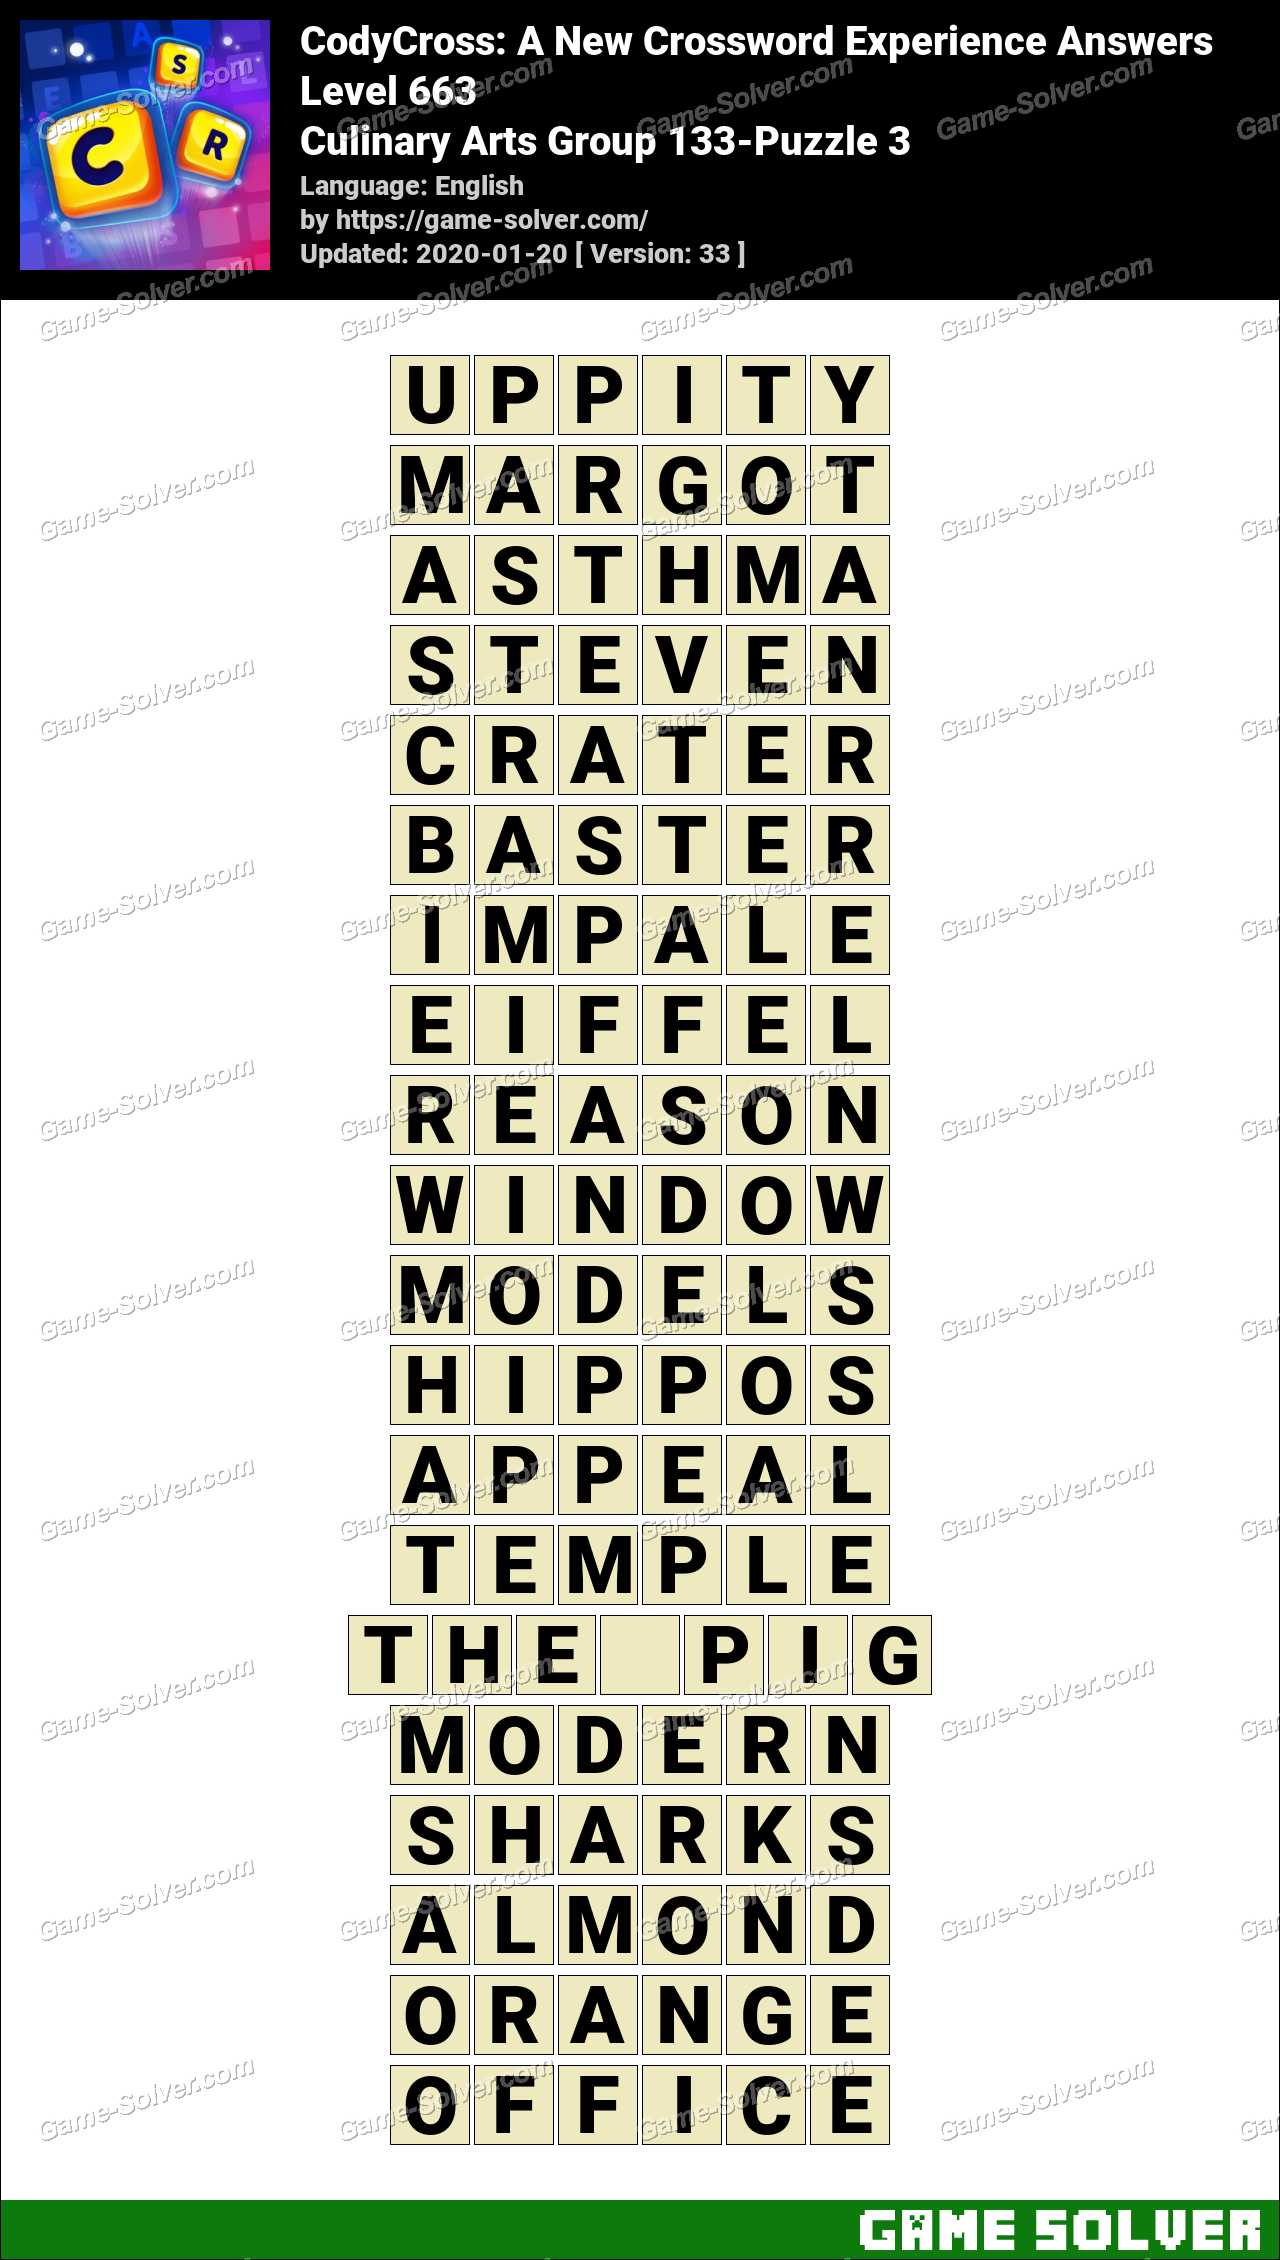 CodyCross Culinary Arts Group 133-Puzzle 3 Answers